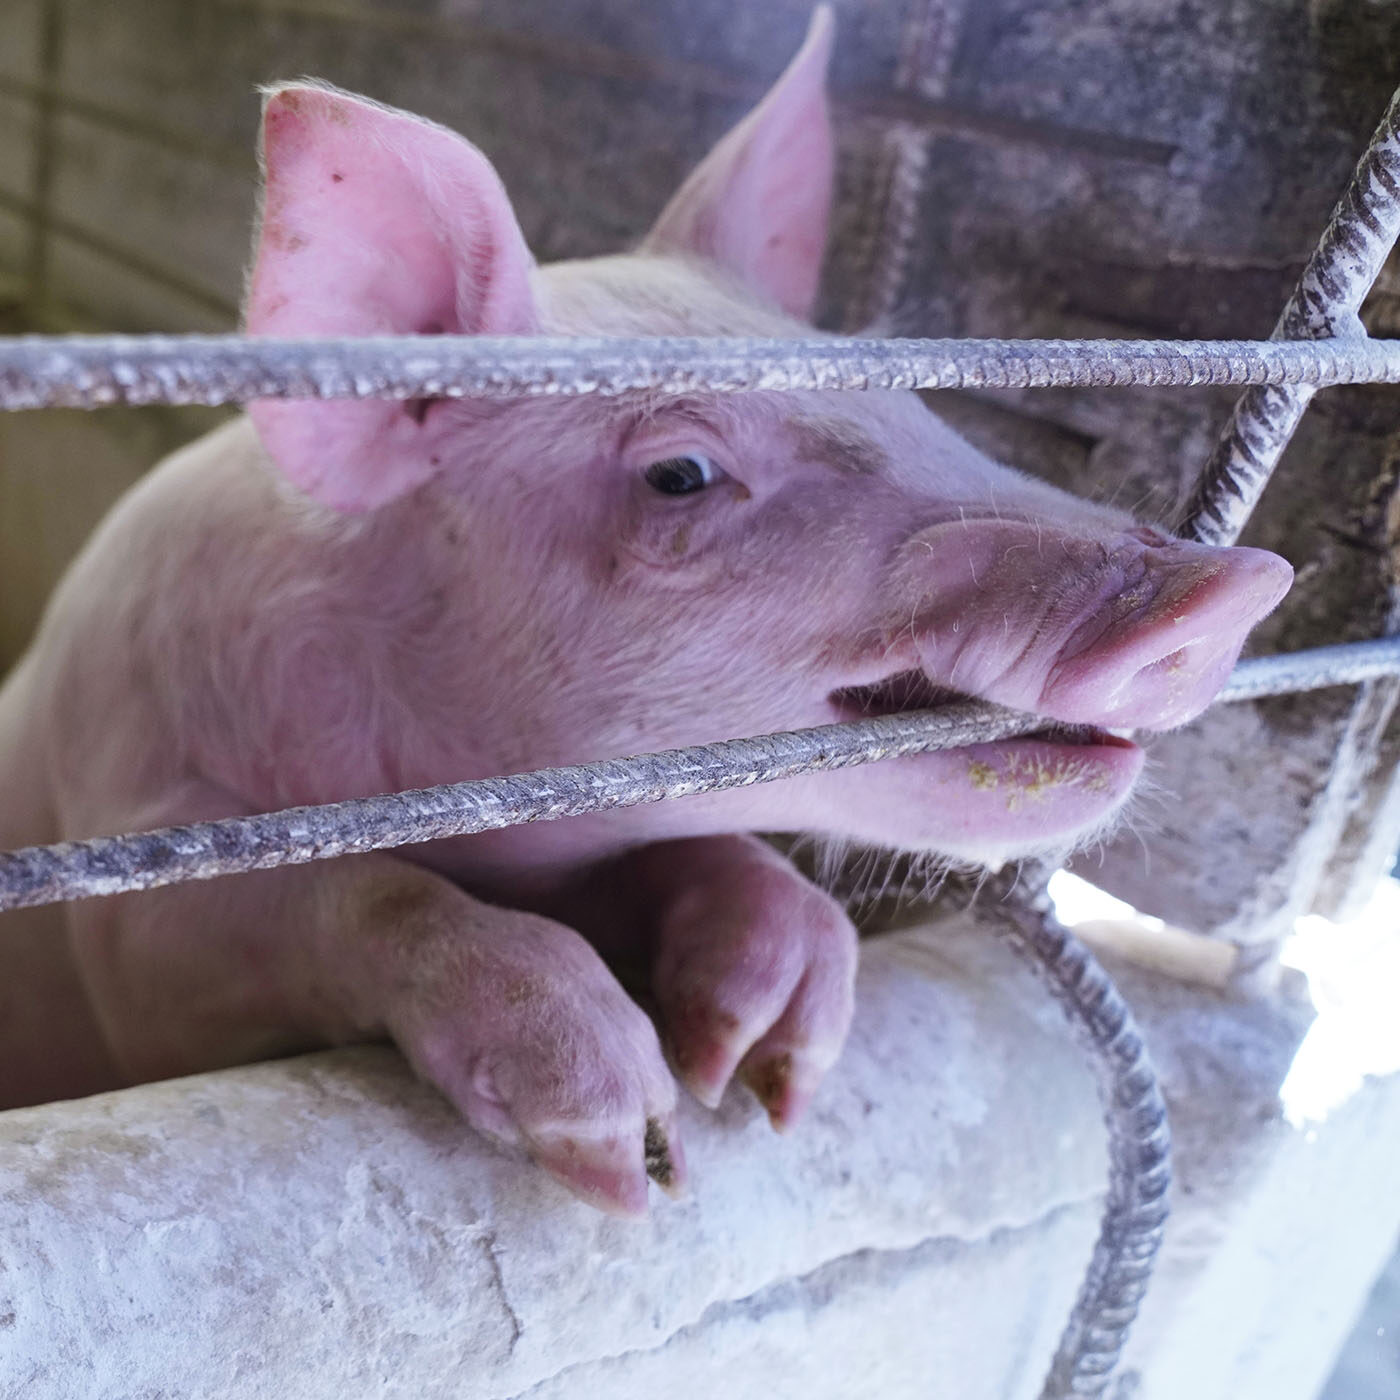 Cruelty Found on Brazilian Pig Farm